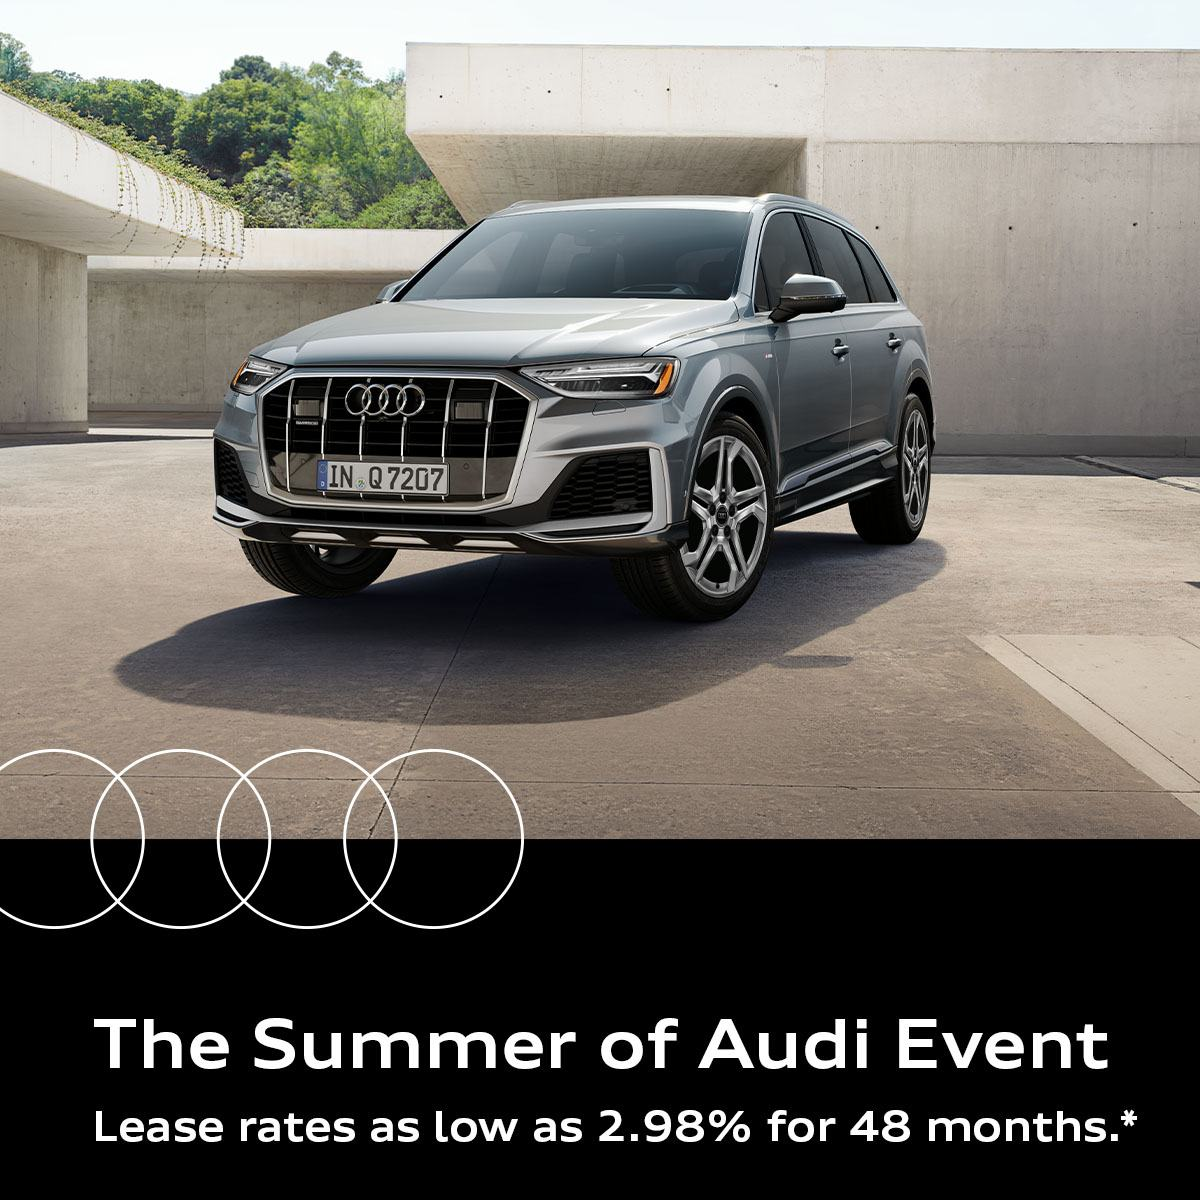 The Summer of Audi Event – Q7